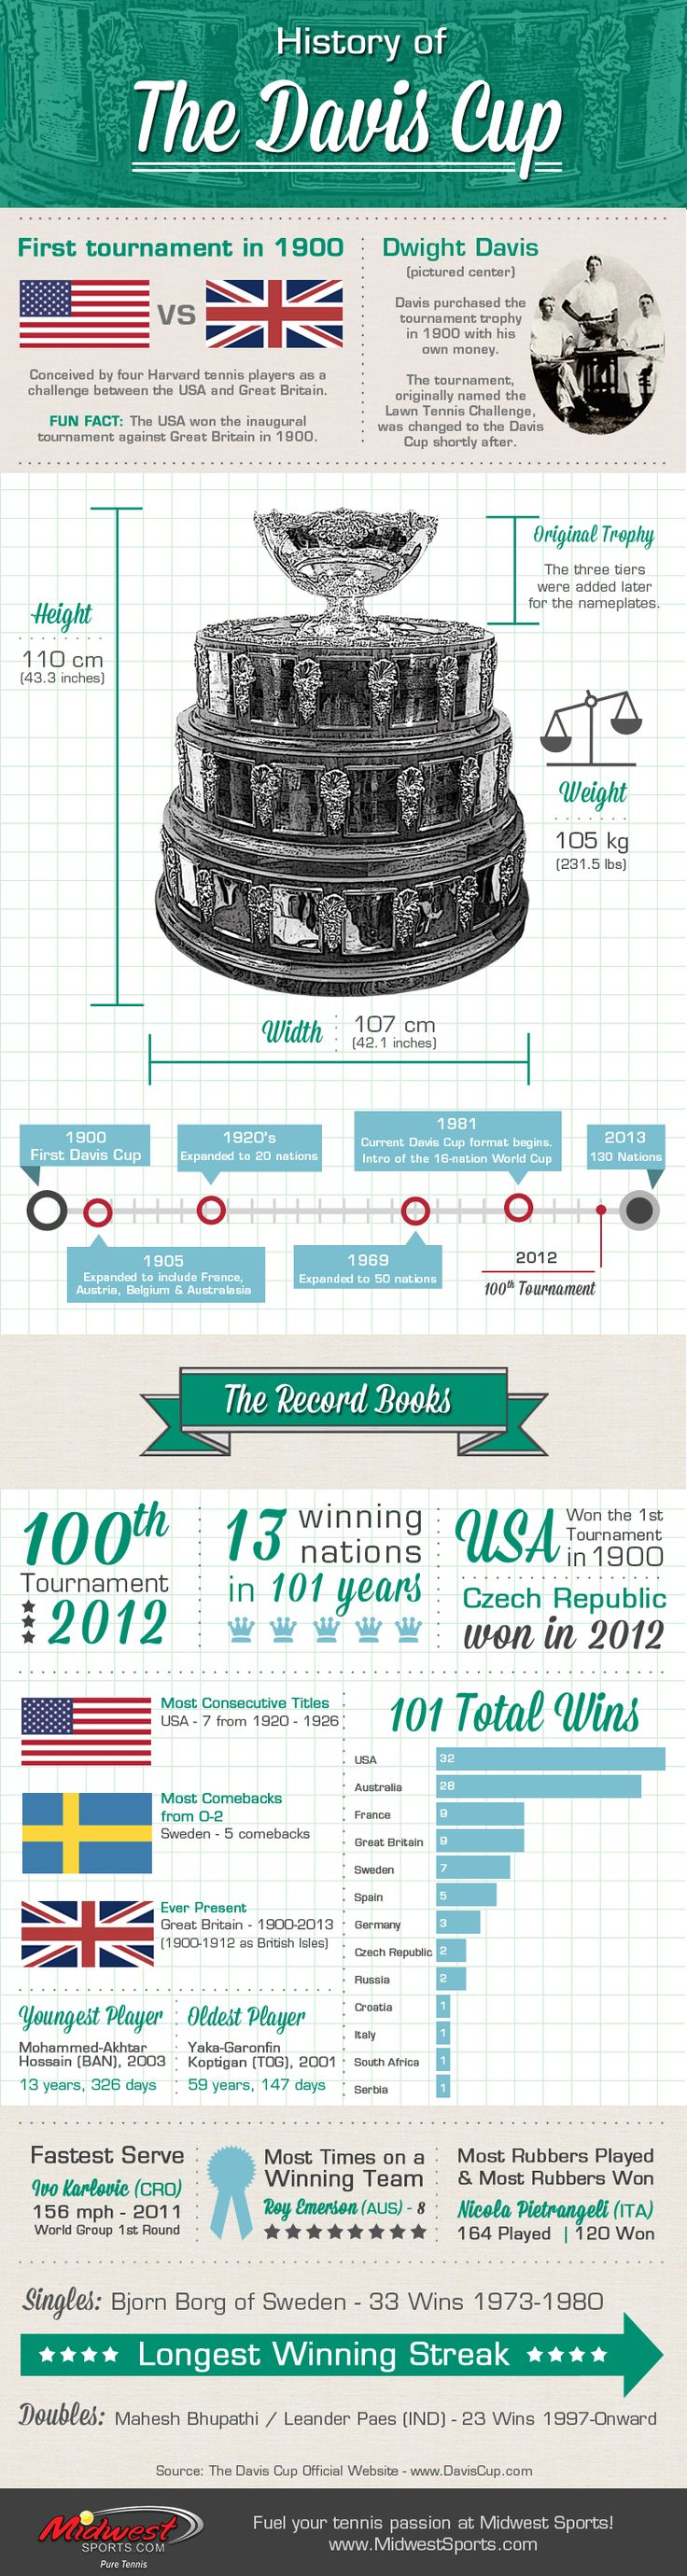 The History of The Davis Cup #Tennis #ATP